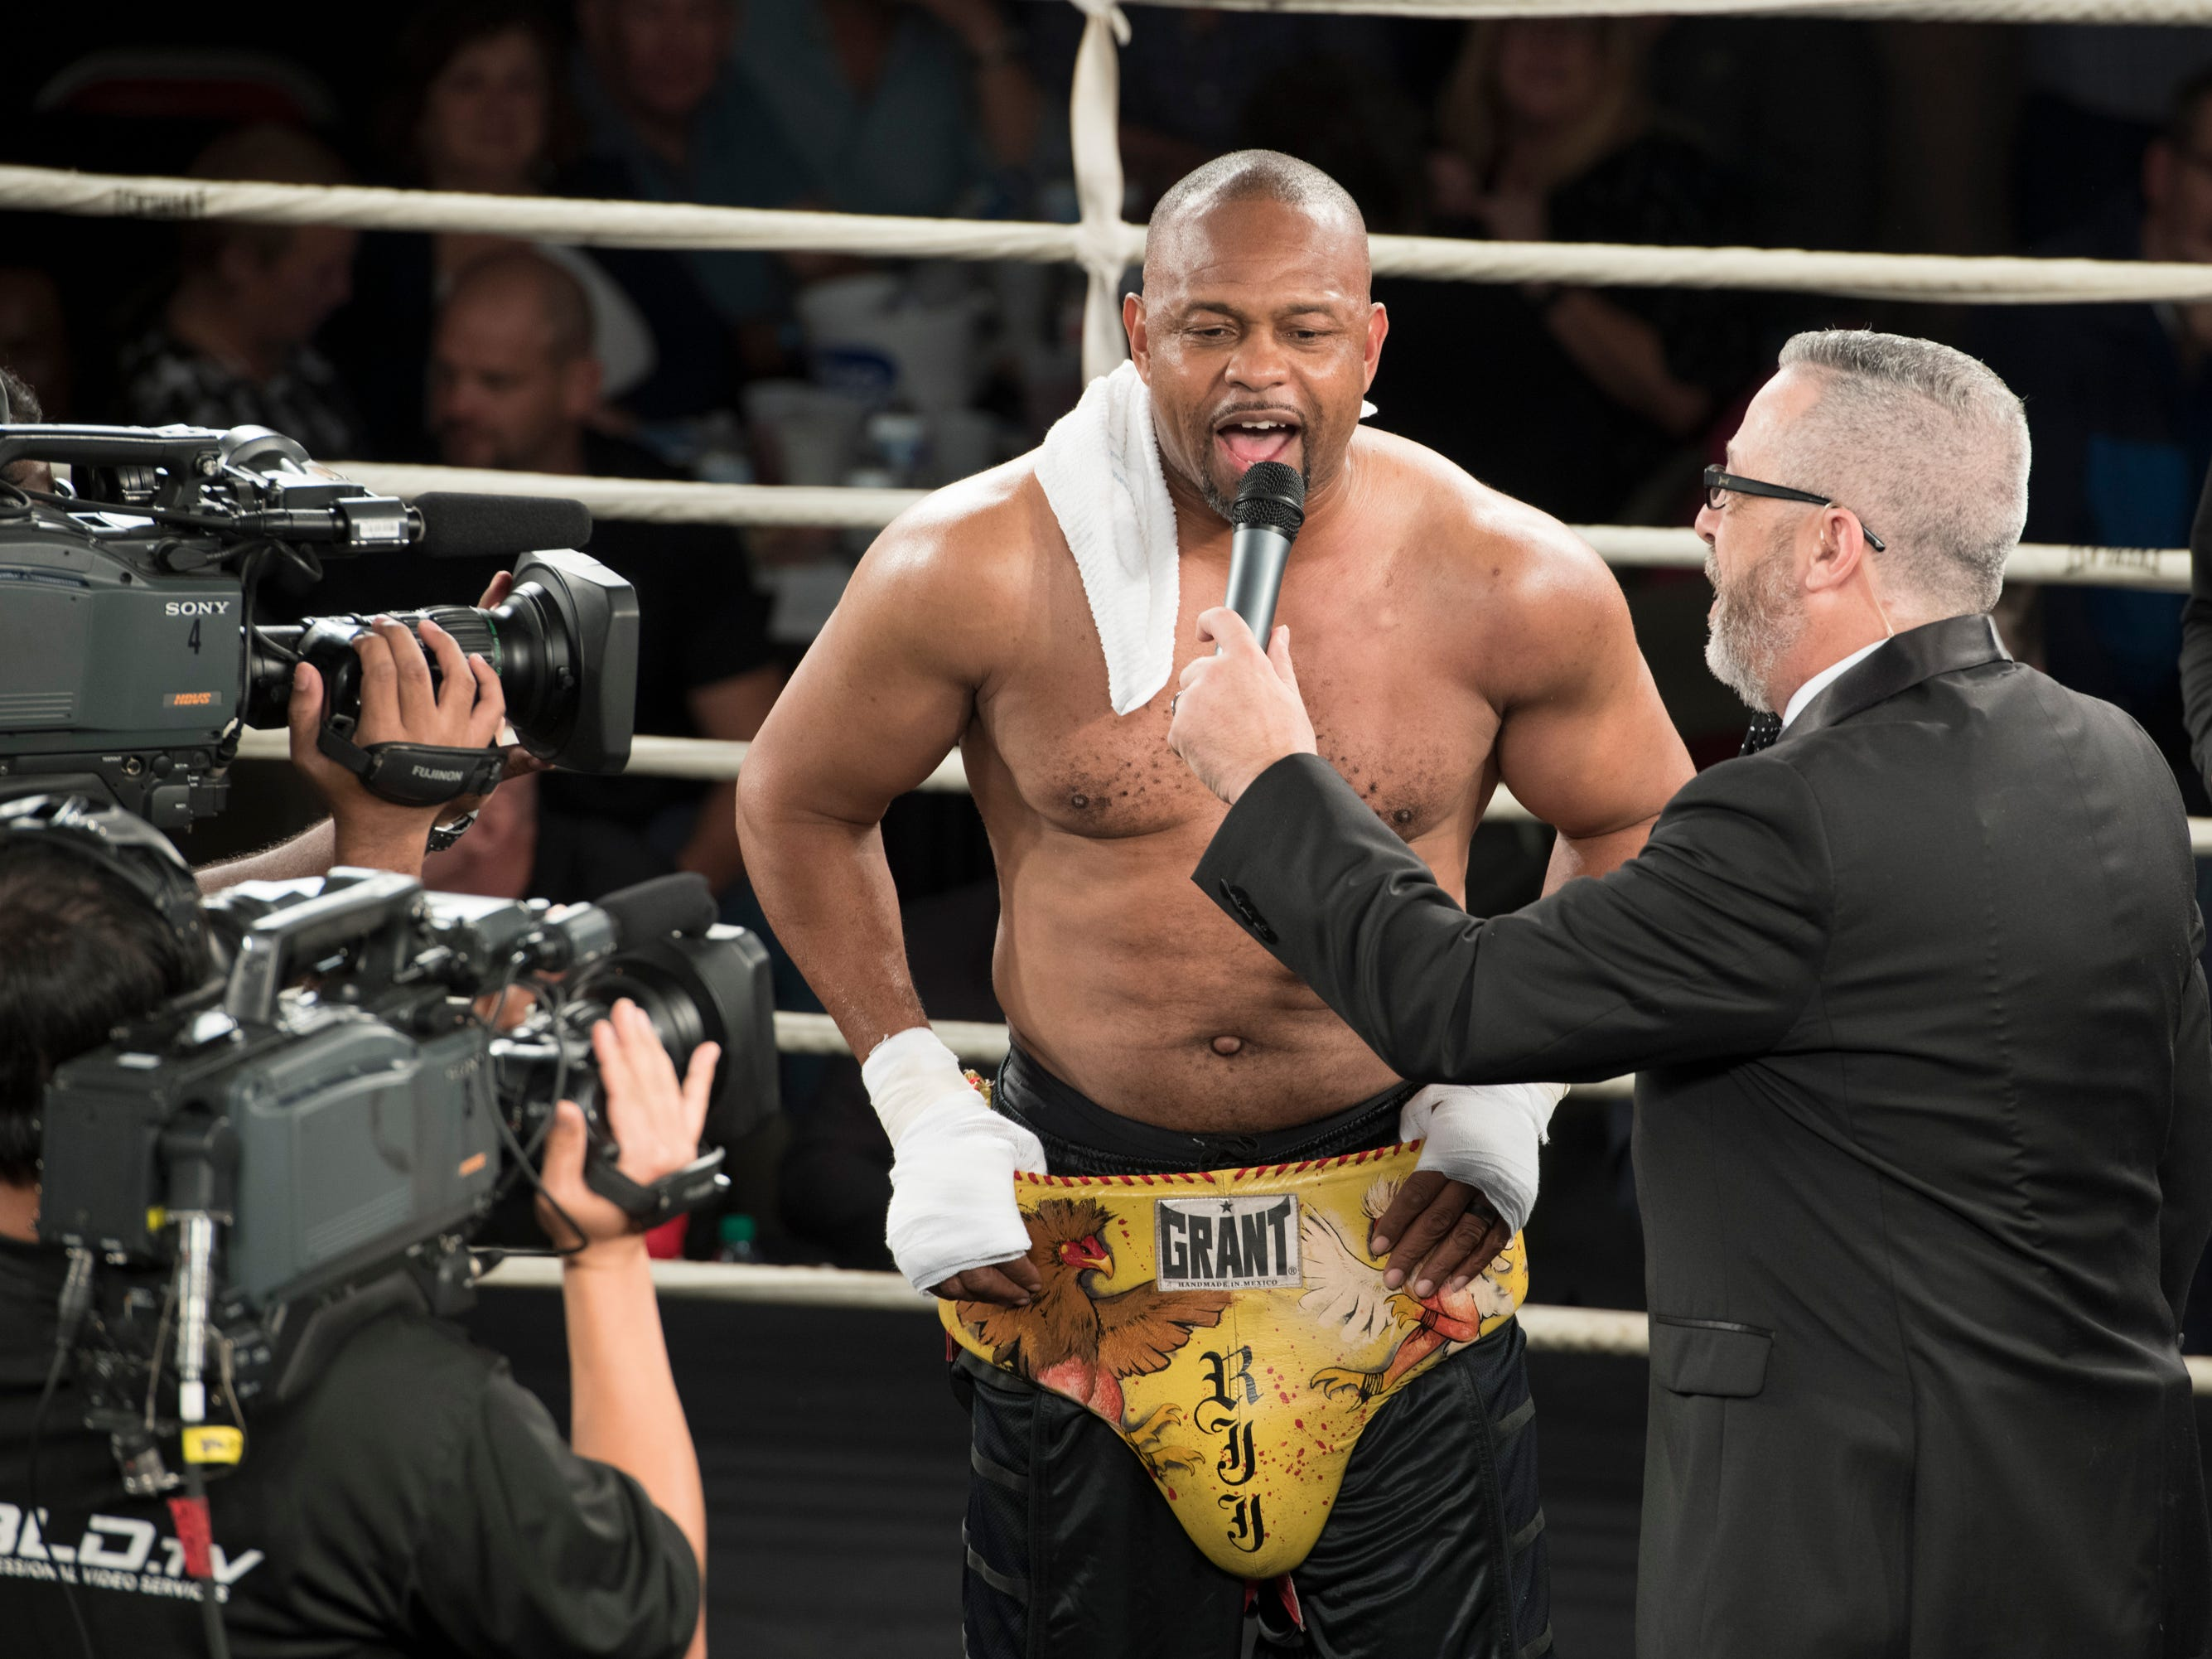 Roy Jones Jr. is interviewed after fighting an exhibition match against Dion Rizzuto during the Island Fights 52 at the Jadji Shrine in Pensacola on Thursday, February 7, 2019.